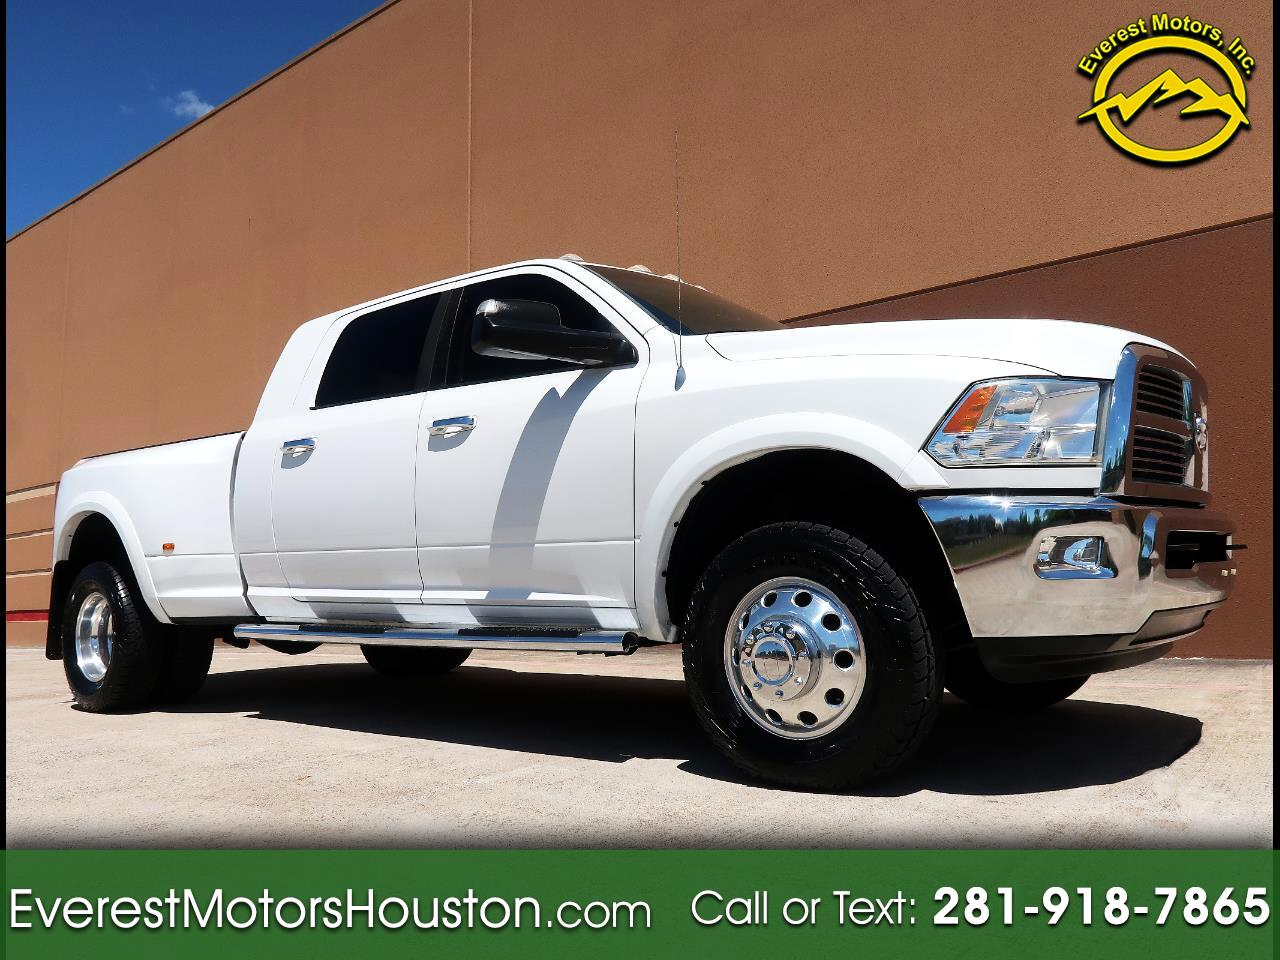 2012 Dodge Ram 3500 LIMITED MEGA CAB SHORT BED 4WD NAV CAM ROOF